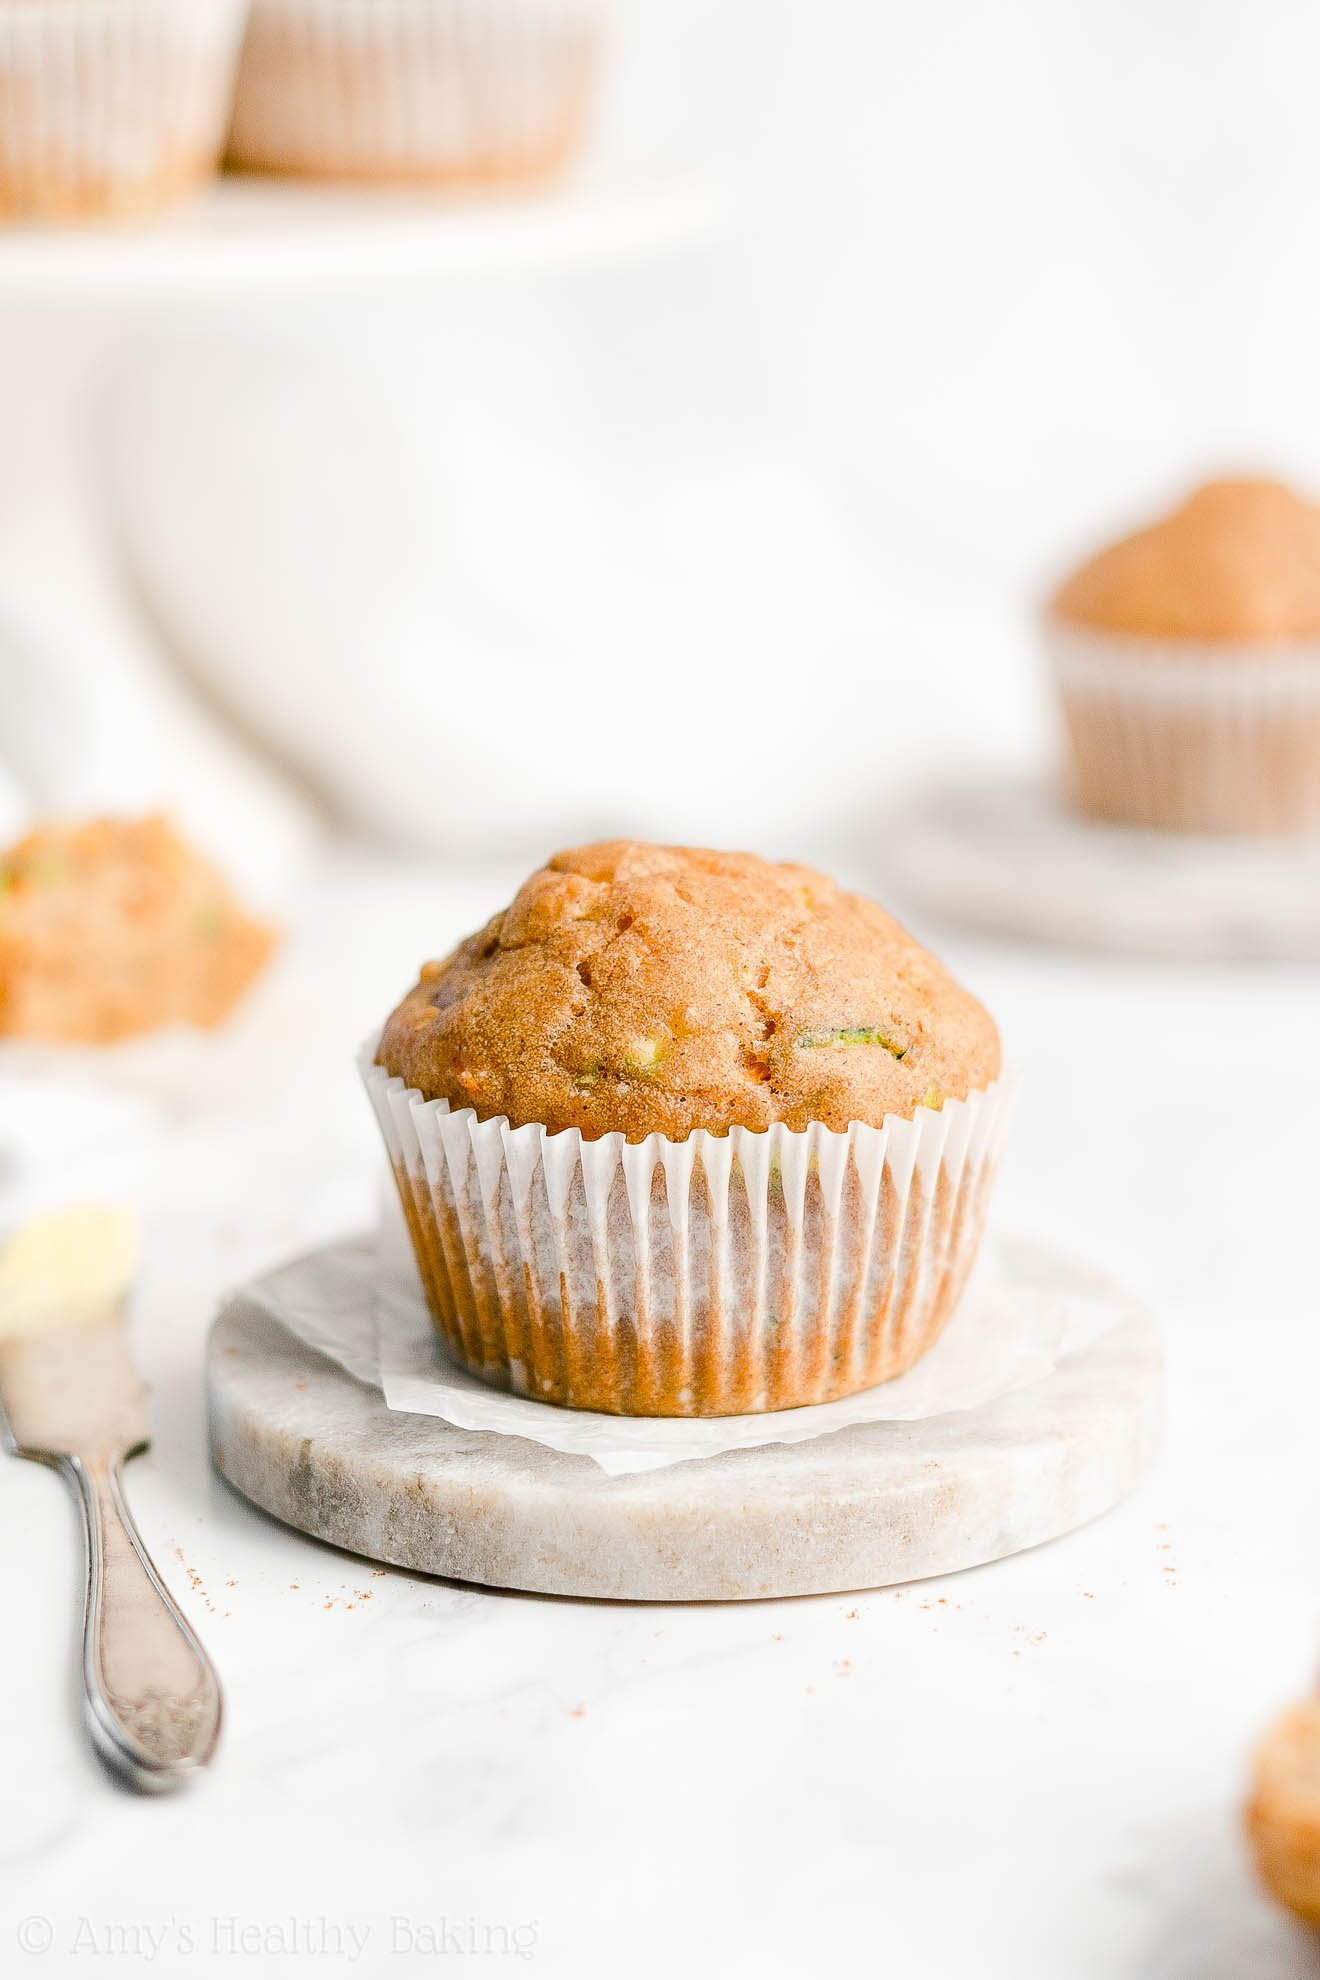 Easy Healthy Gluten Free No Sugar Moist Spiced Carrot Zucchini Muffins